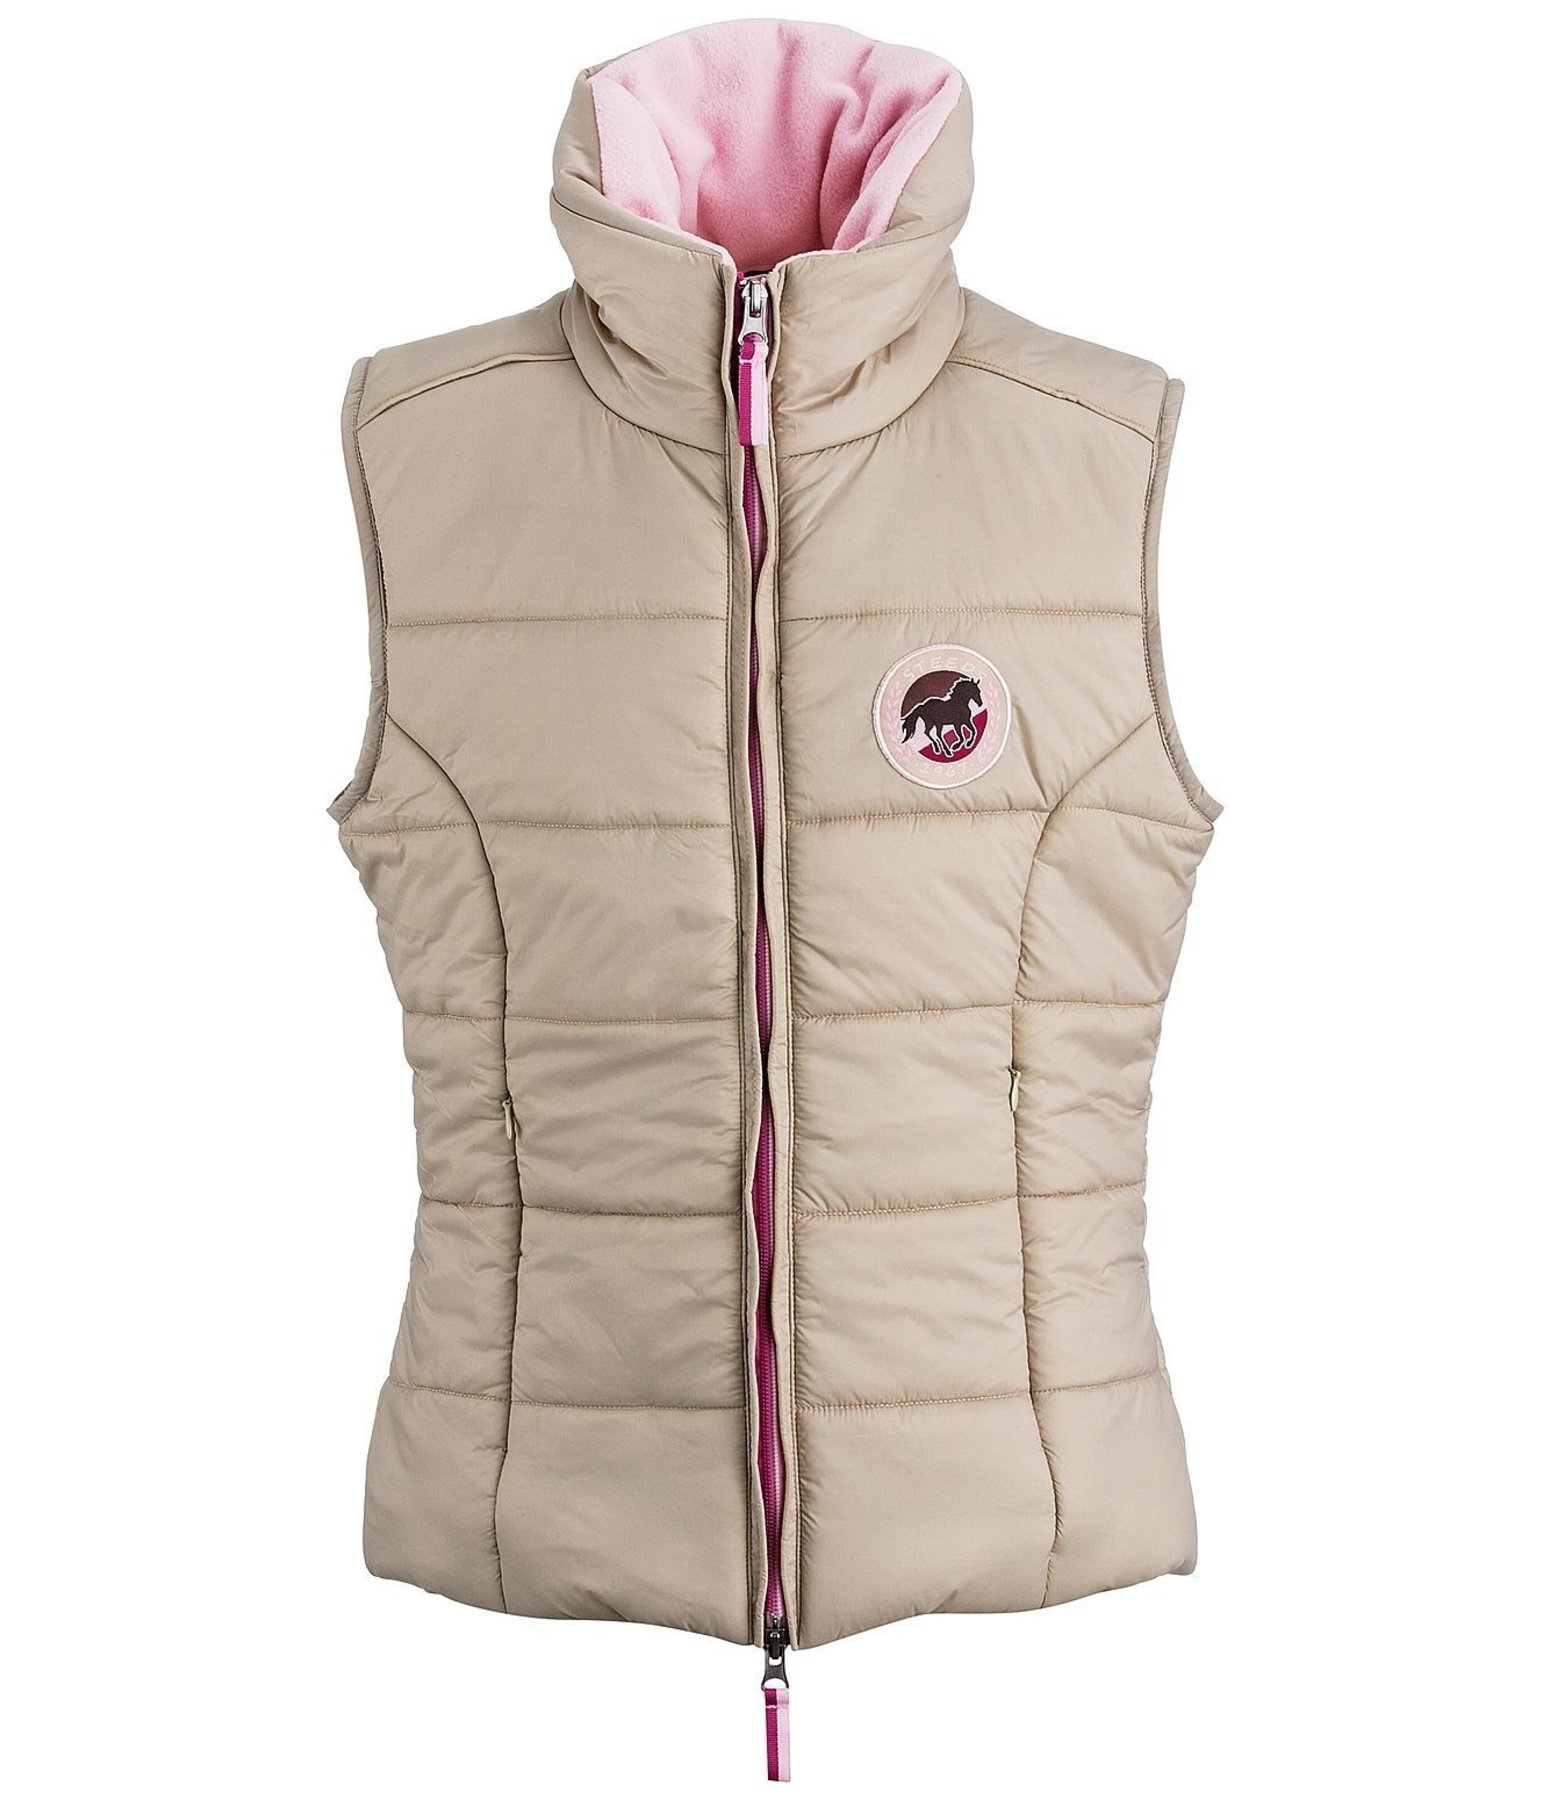 c591fe9ea Children's Riding Gilet Tracy - Children's Riding Jackets & Gilets ...